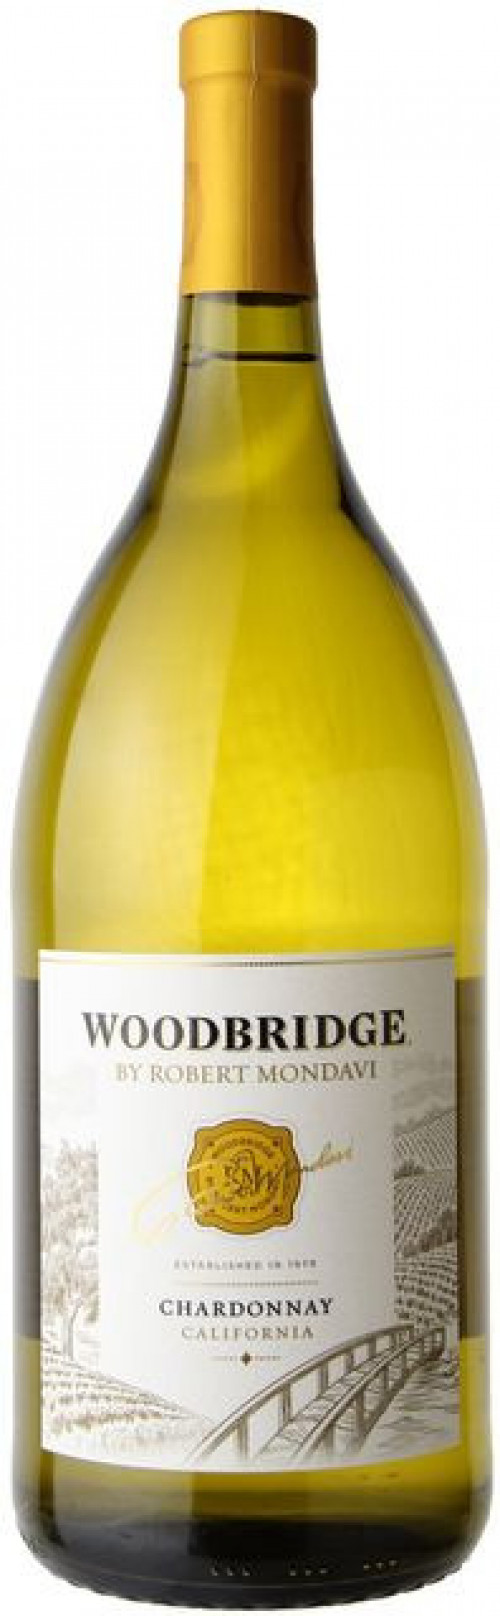 Woodbridge By Robert Mondavi Chardonnay 1.5 Ltr